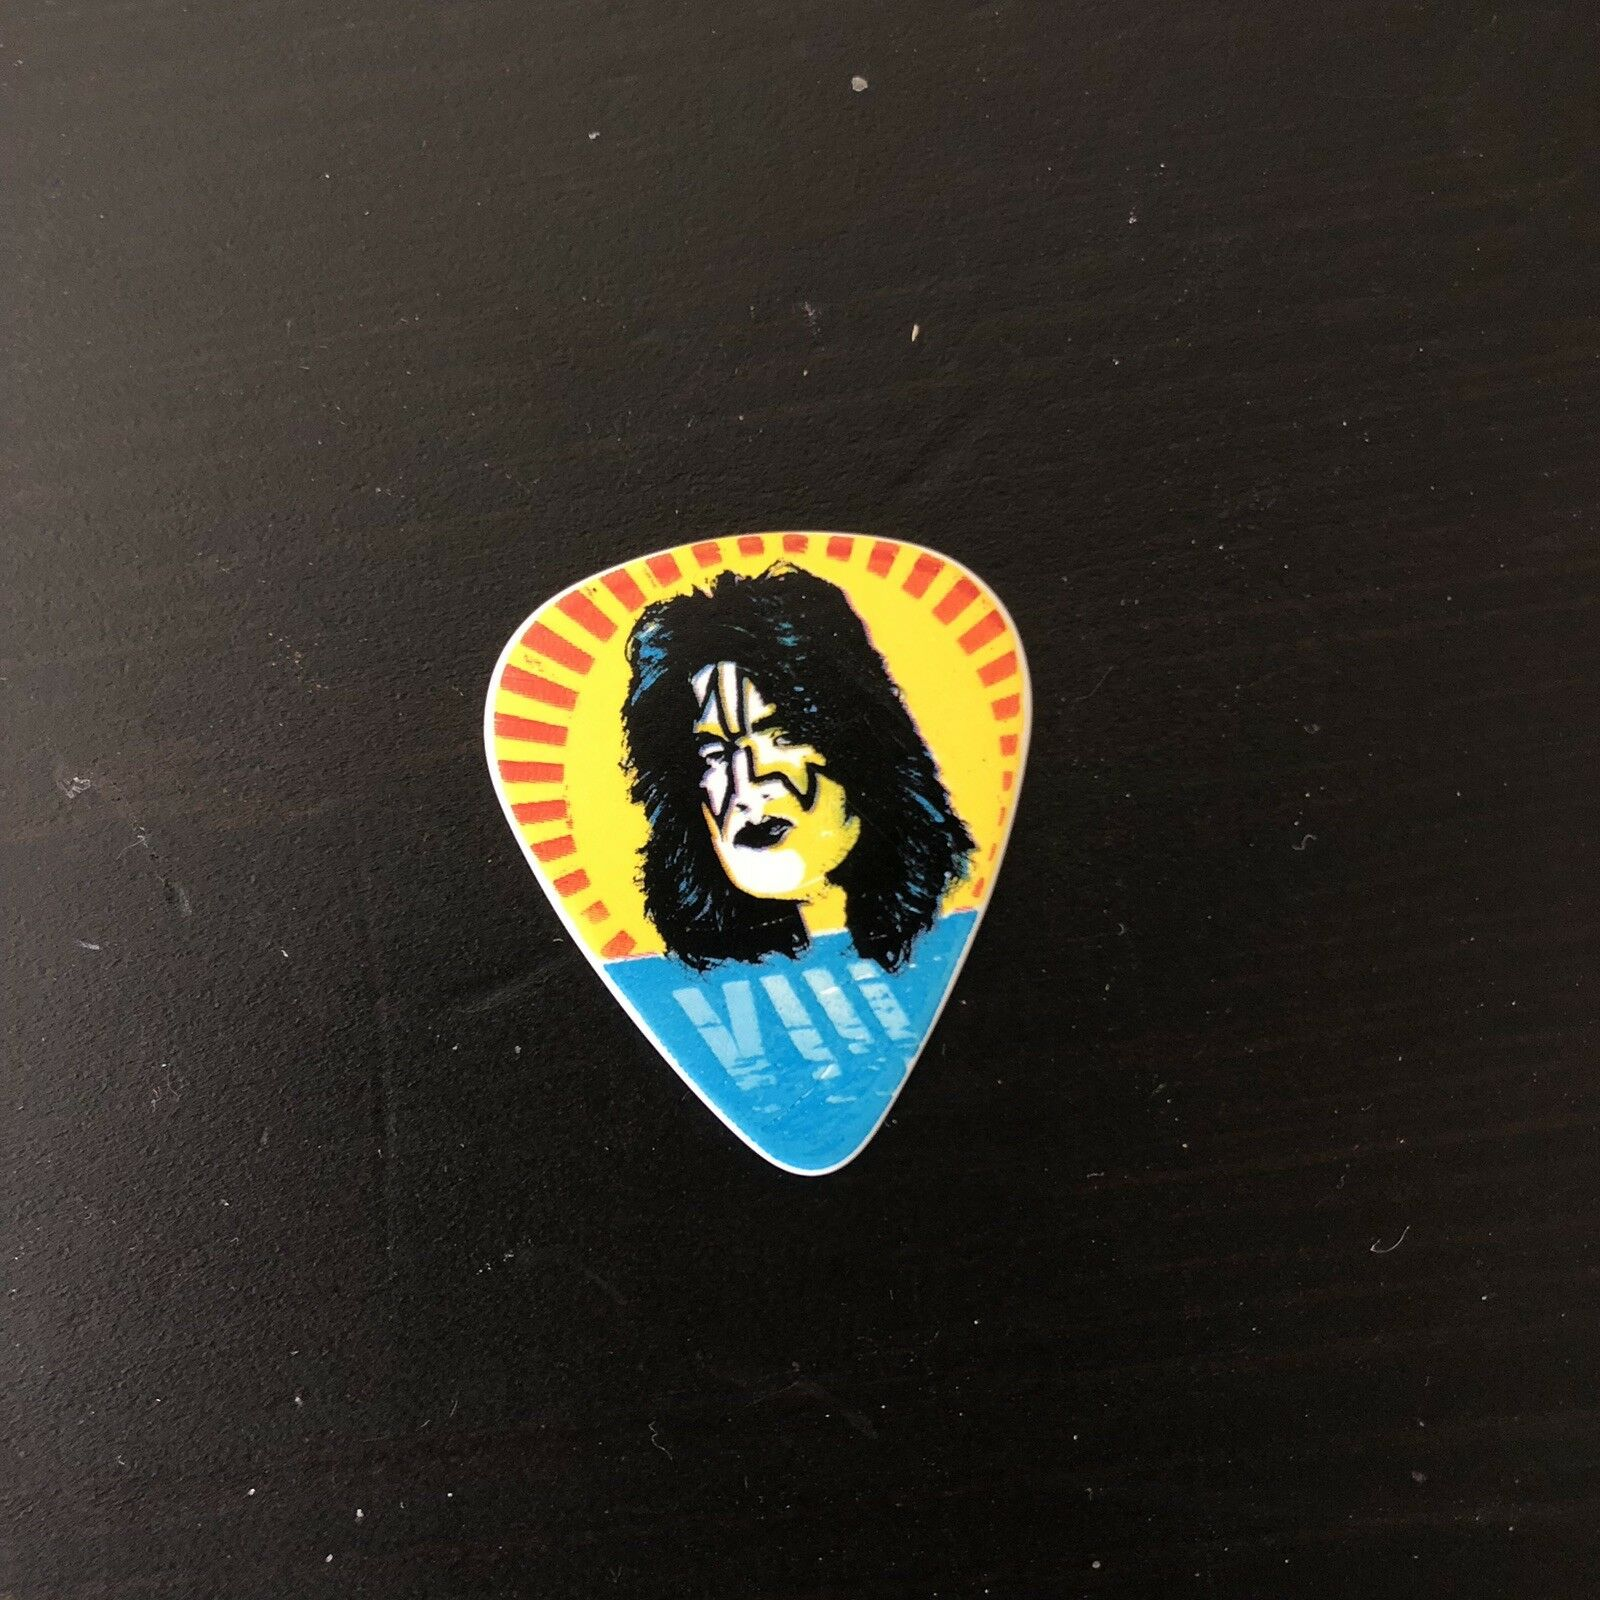 s l1600 - KISS End Of Road Tour Guitar Pick 2019 - Spaceman Tommy Thayer Signed Autograph